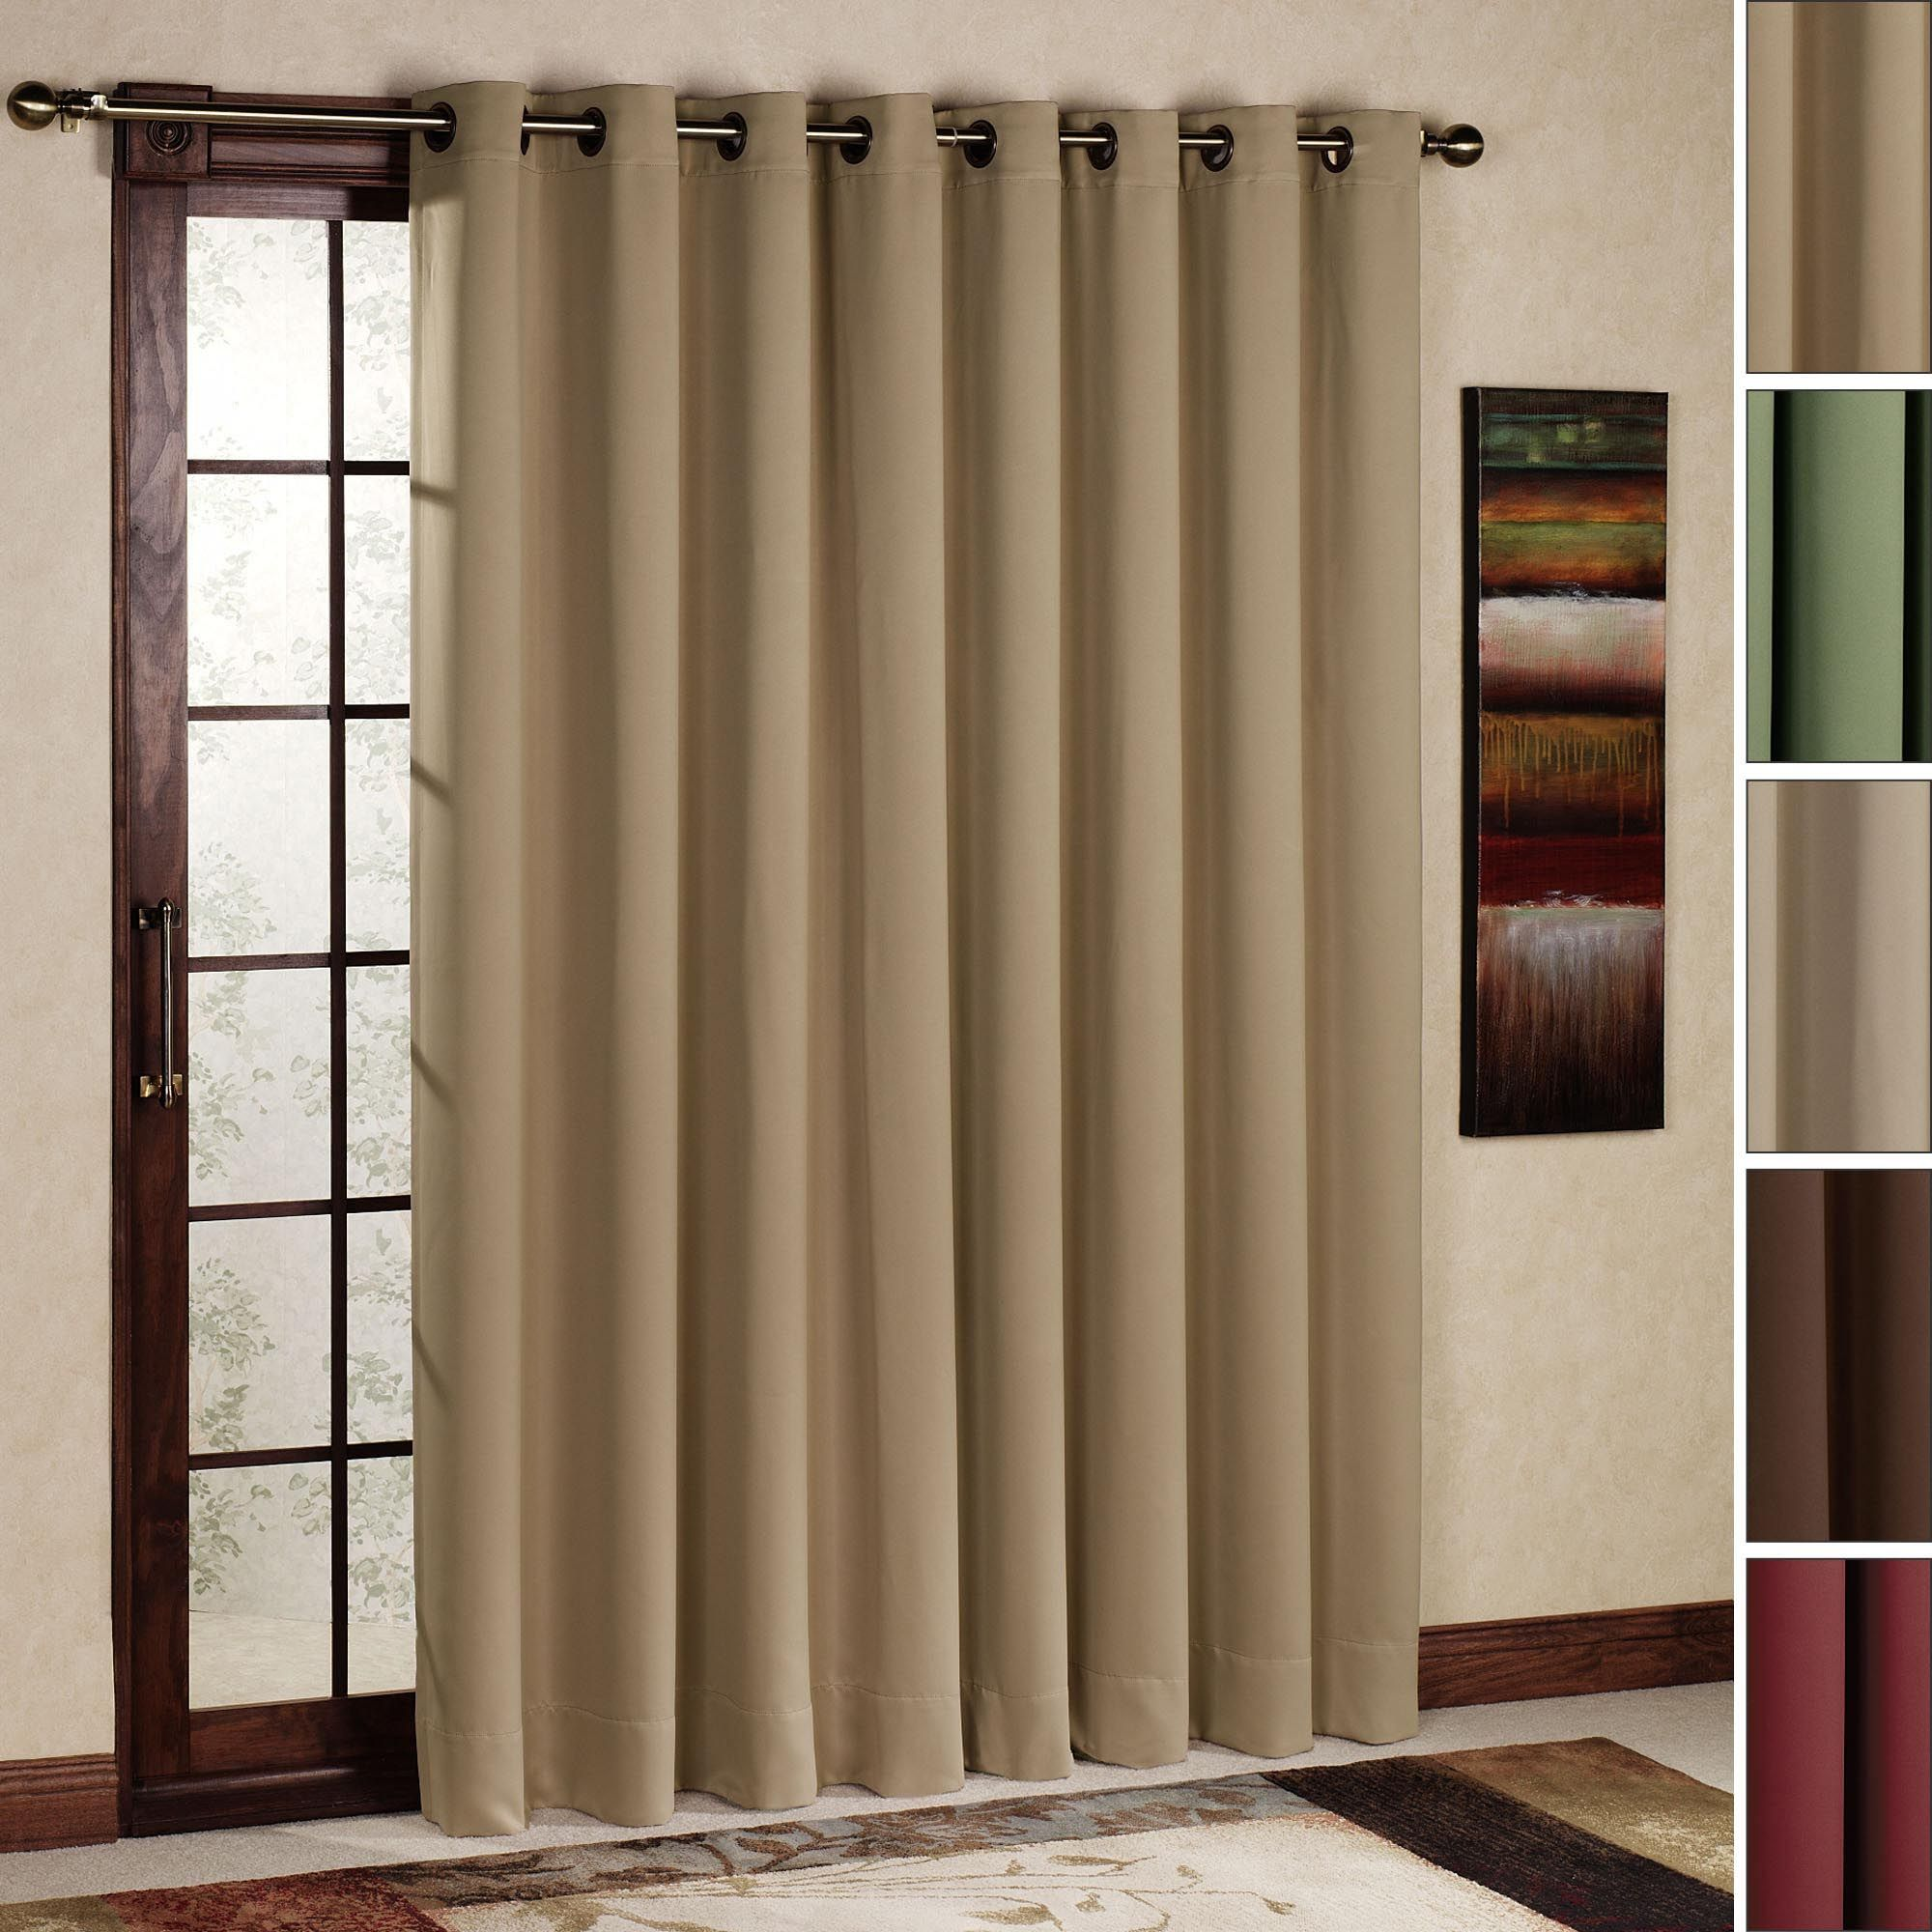 Curtain Rod Size For Sliding Glass Door Curtain Rods Pinterest